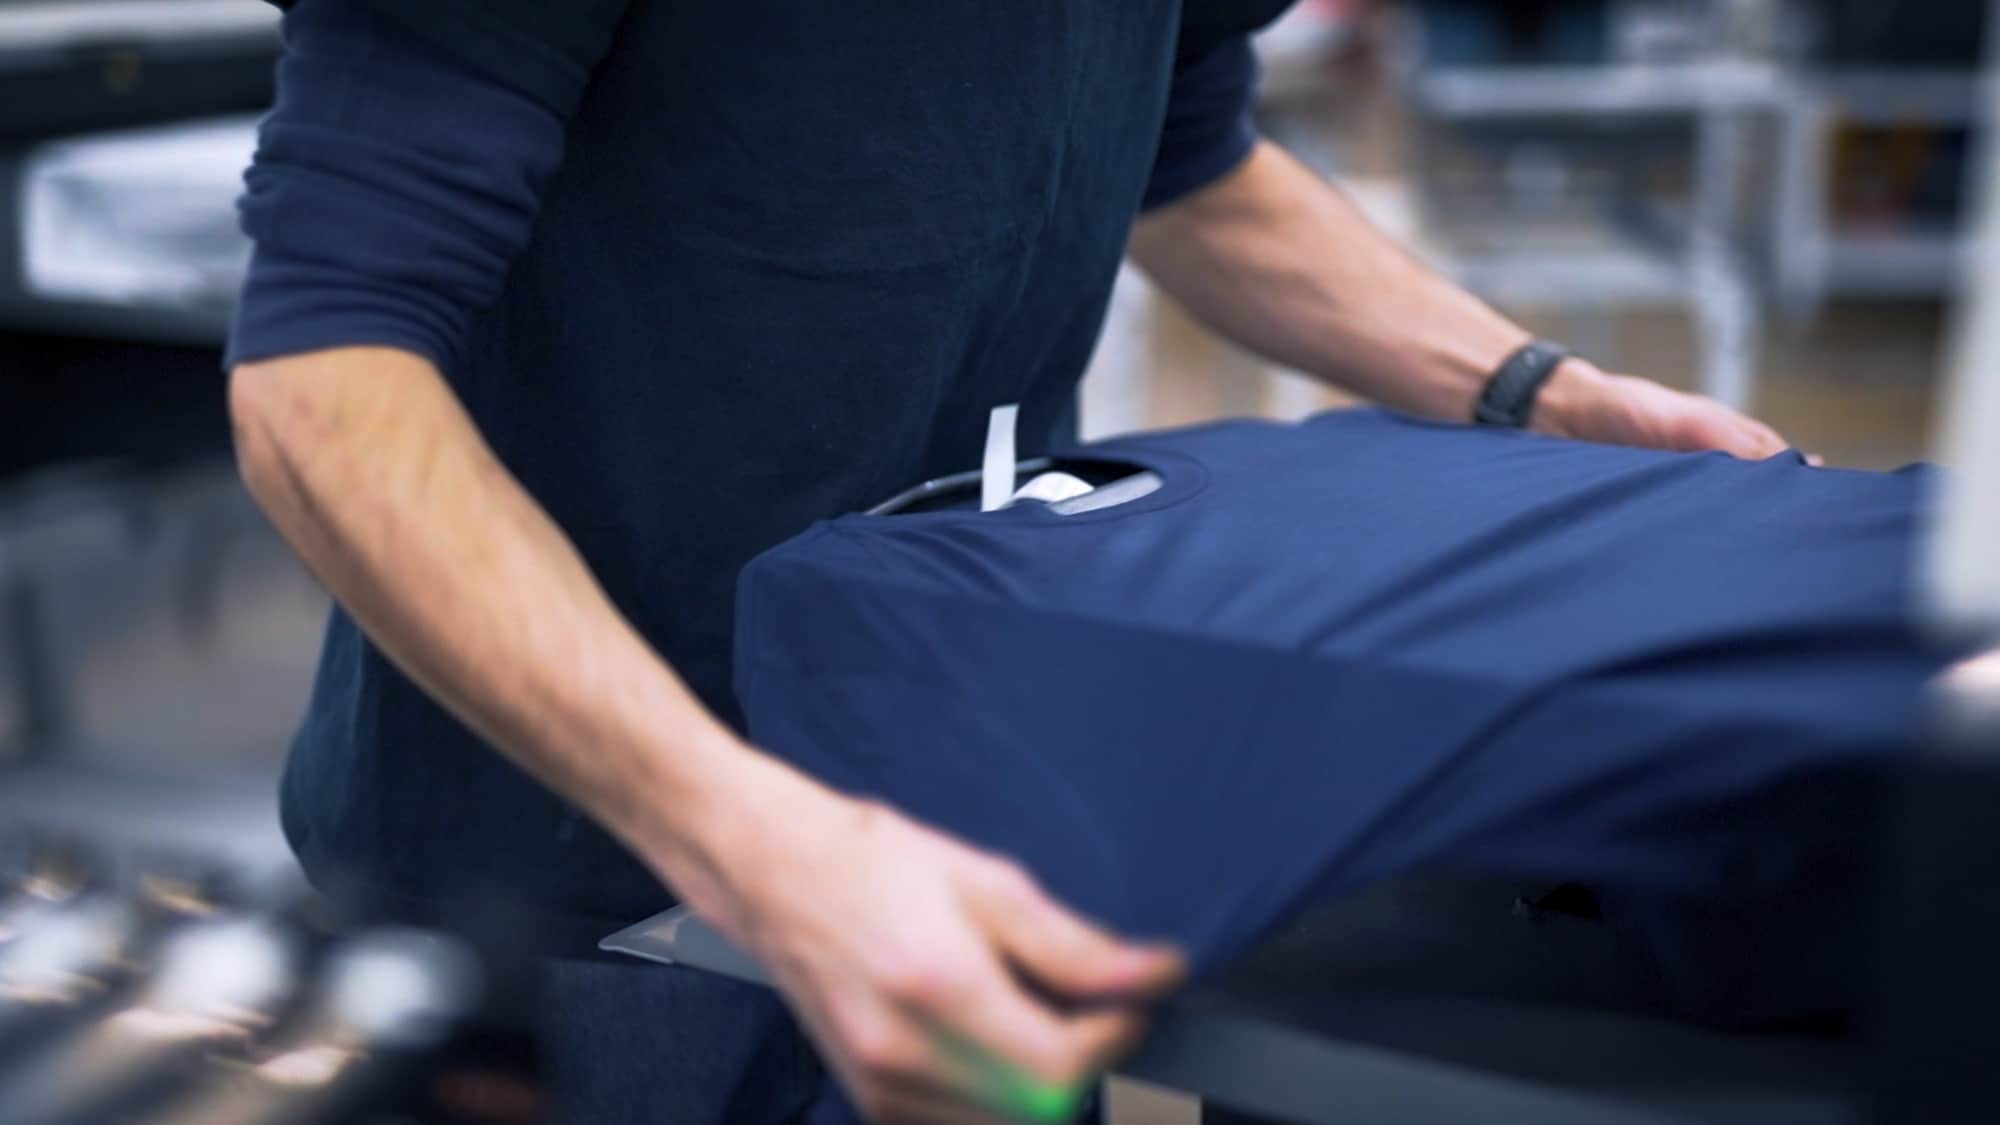 An operator loading a t-shirt to be digitally printed.